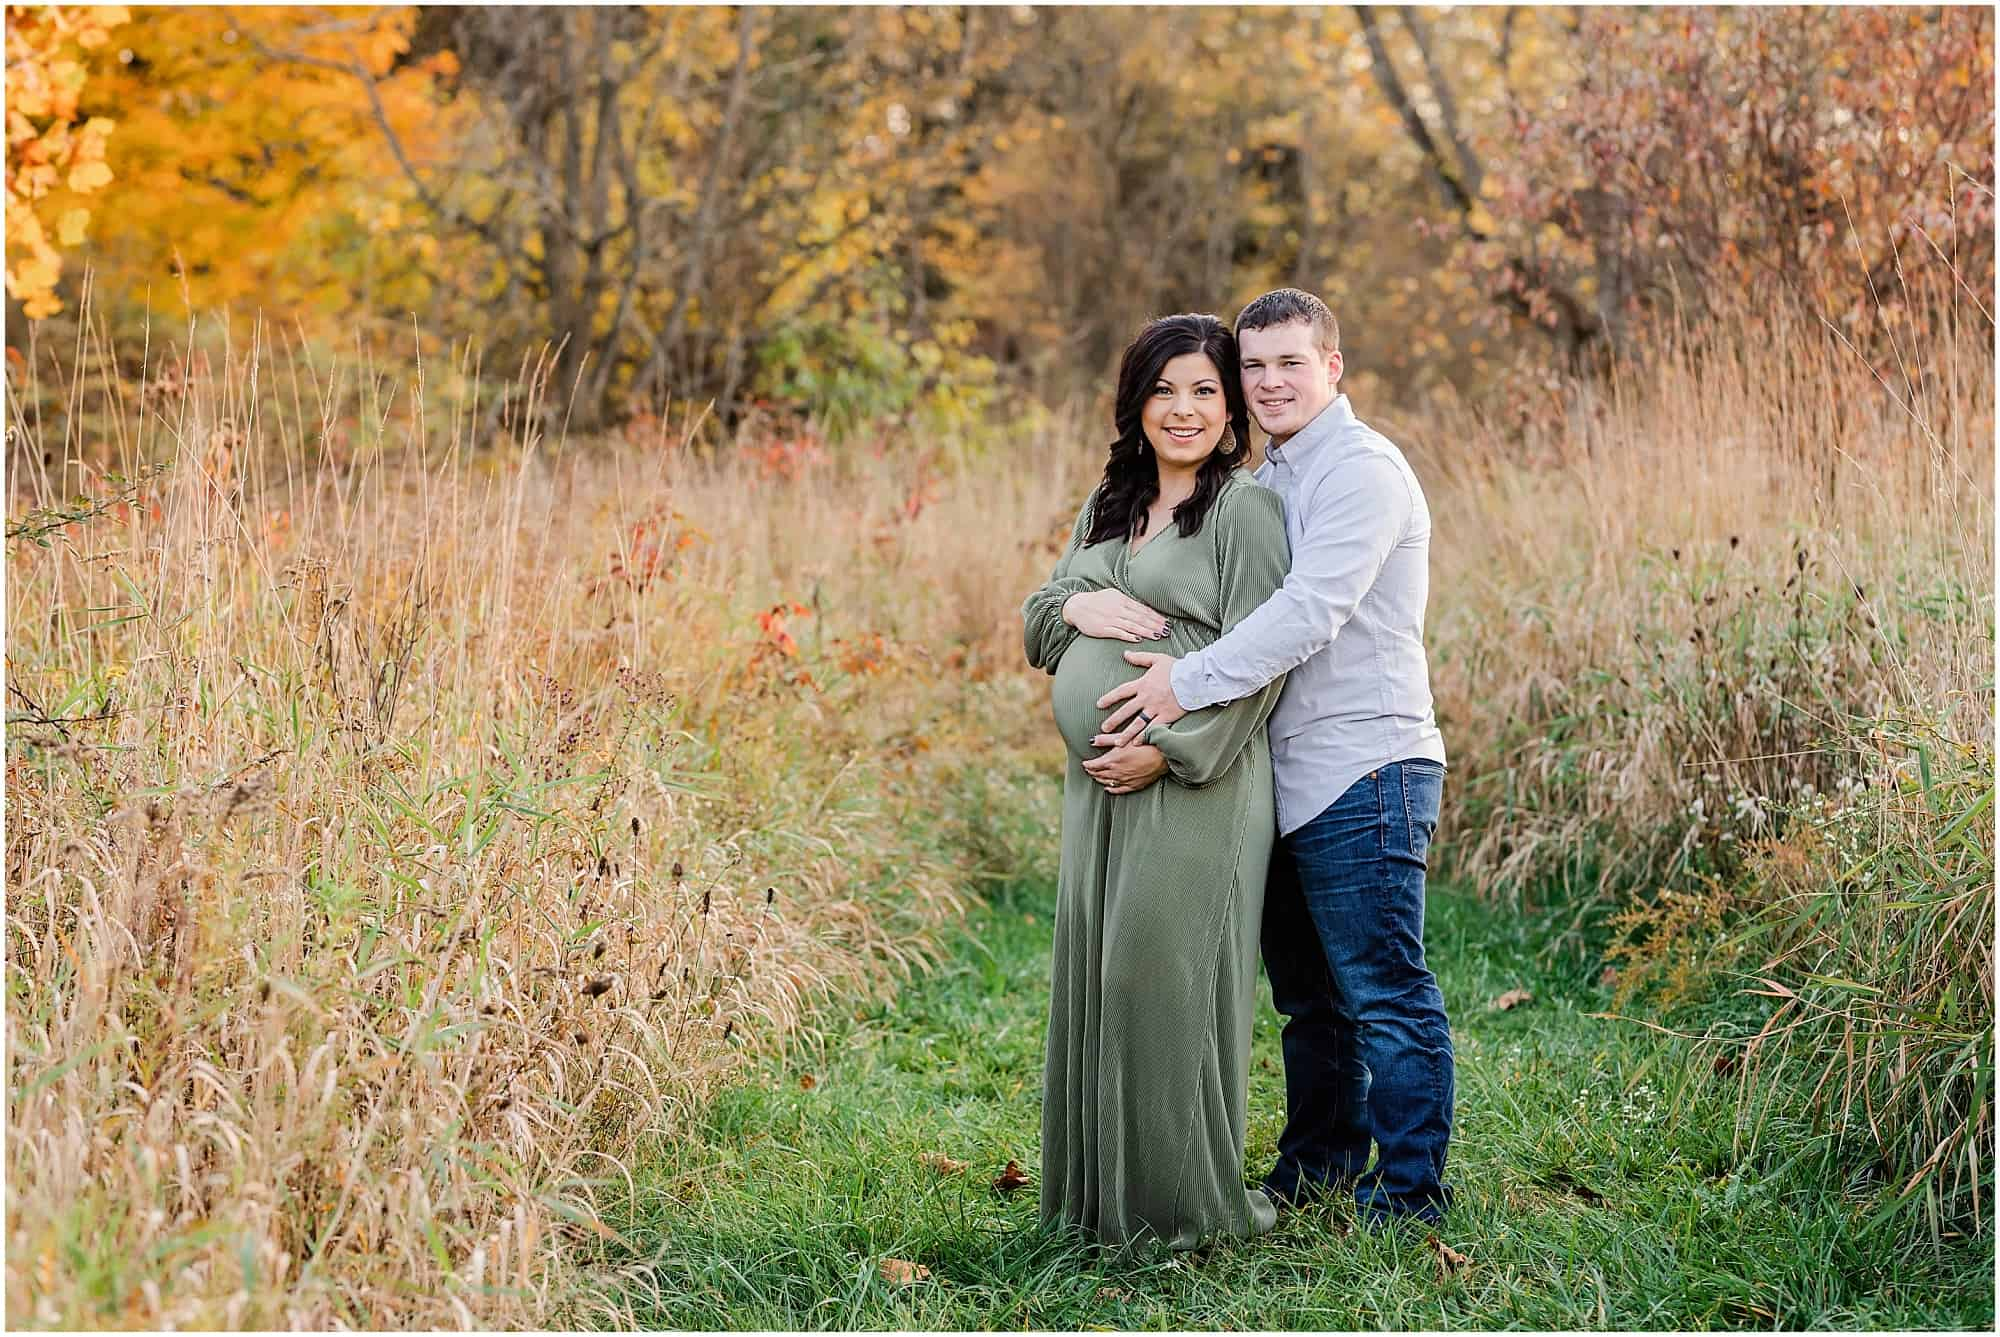 norwalk maternity photographer tiffany murray